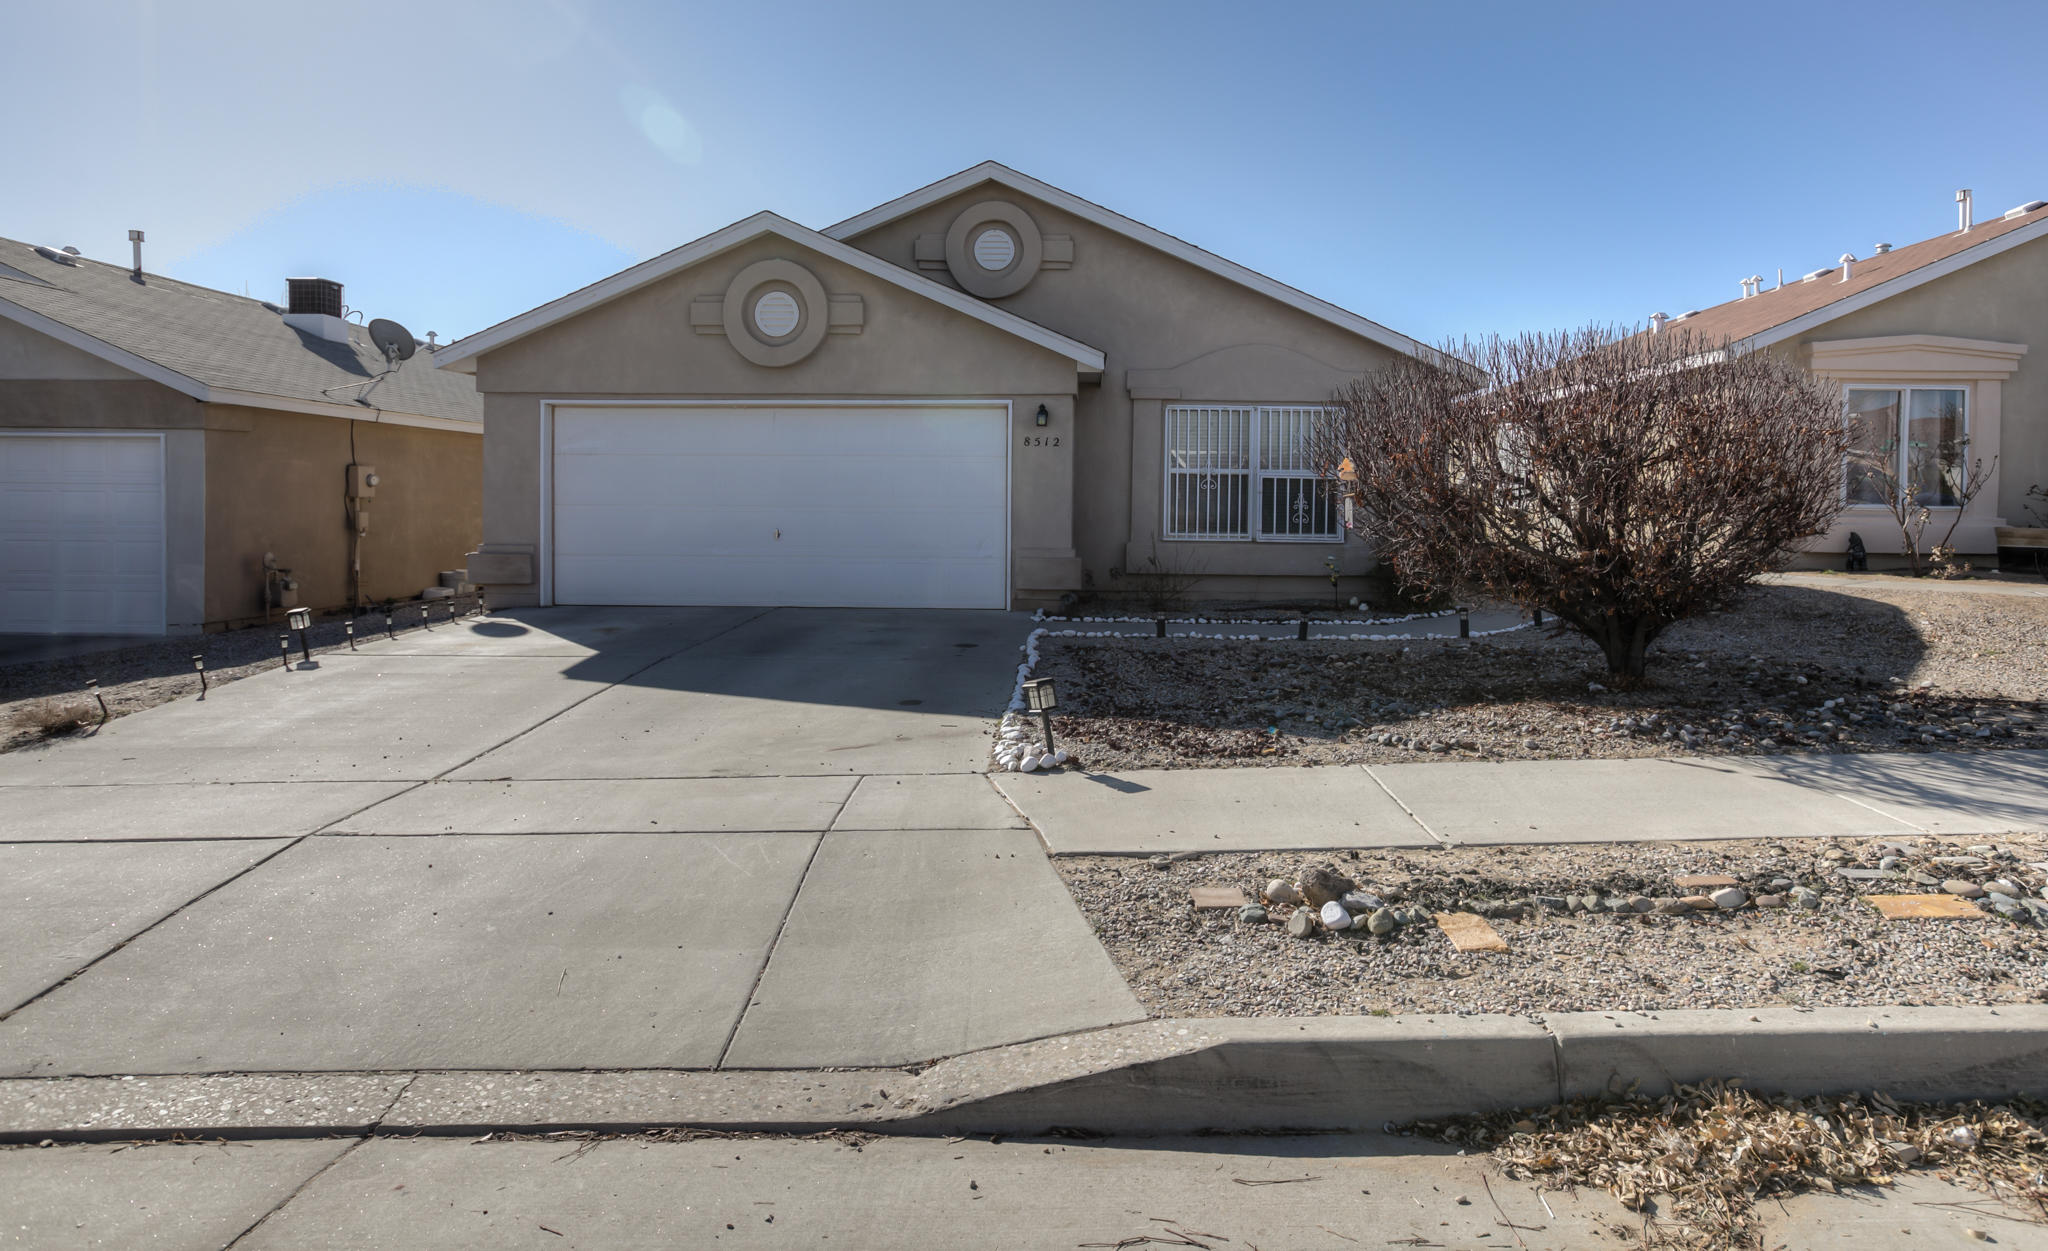 Come check out this great house that was remodeled in 2017 which included water heater, furnace, refrigerated air, dishwasher, refrigerator, stove, flooring, and cabinets. 10 foot ceilings in dining room, kitchen and living room give the living areas an extra cozy feel, especially with the gas fireplace keeping you warm on those cool winter evenings. New Charter School for 5 & 6 grades just opened at west end of the street.